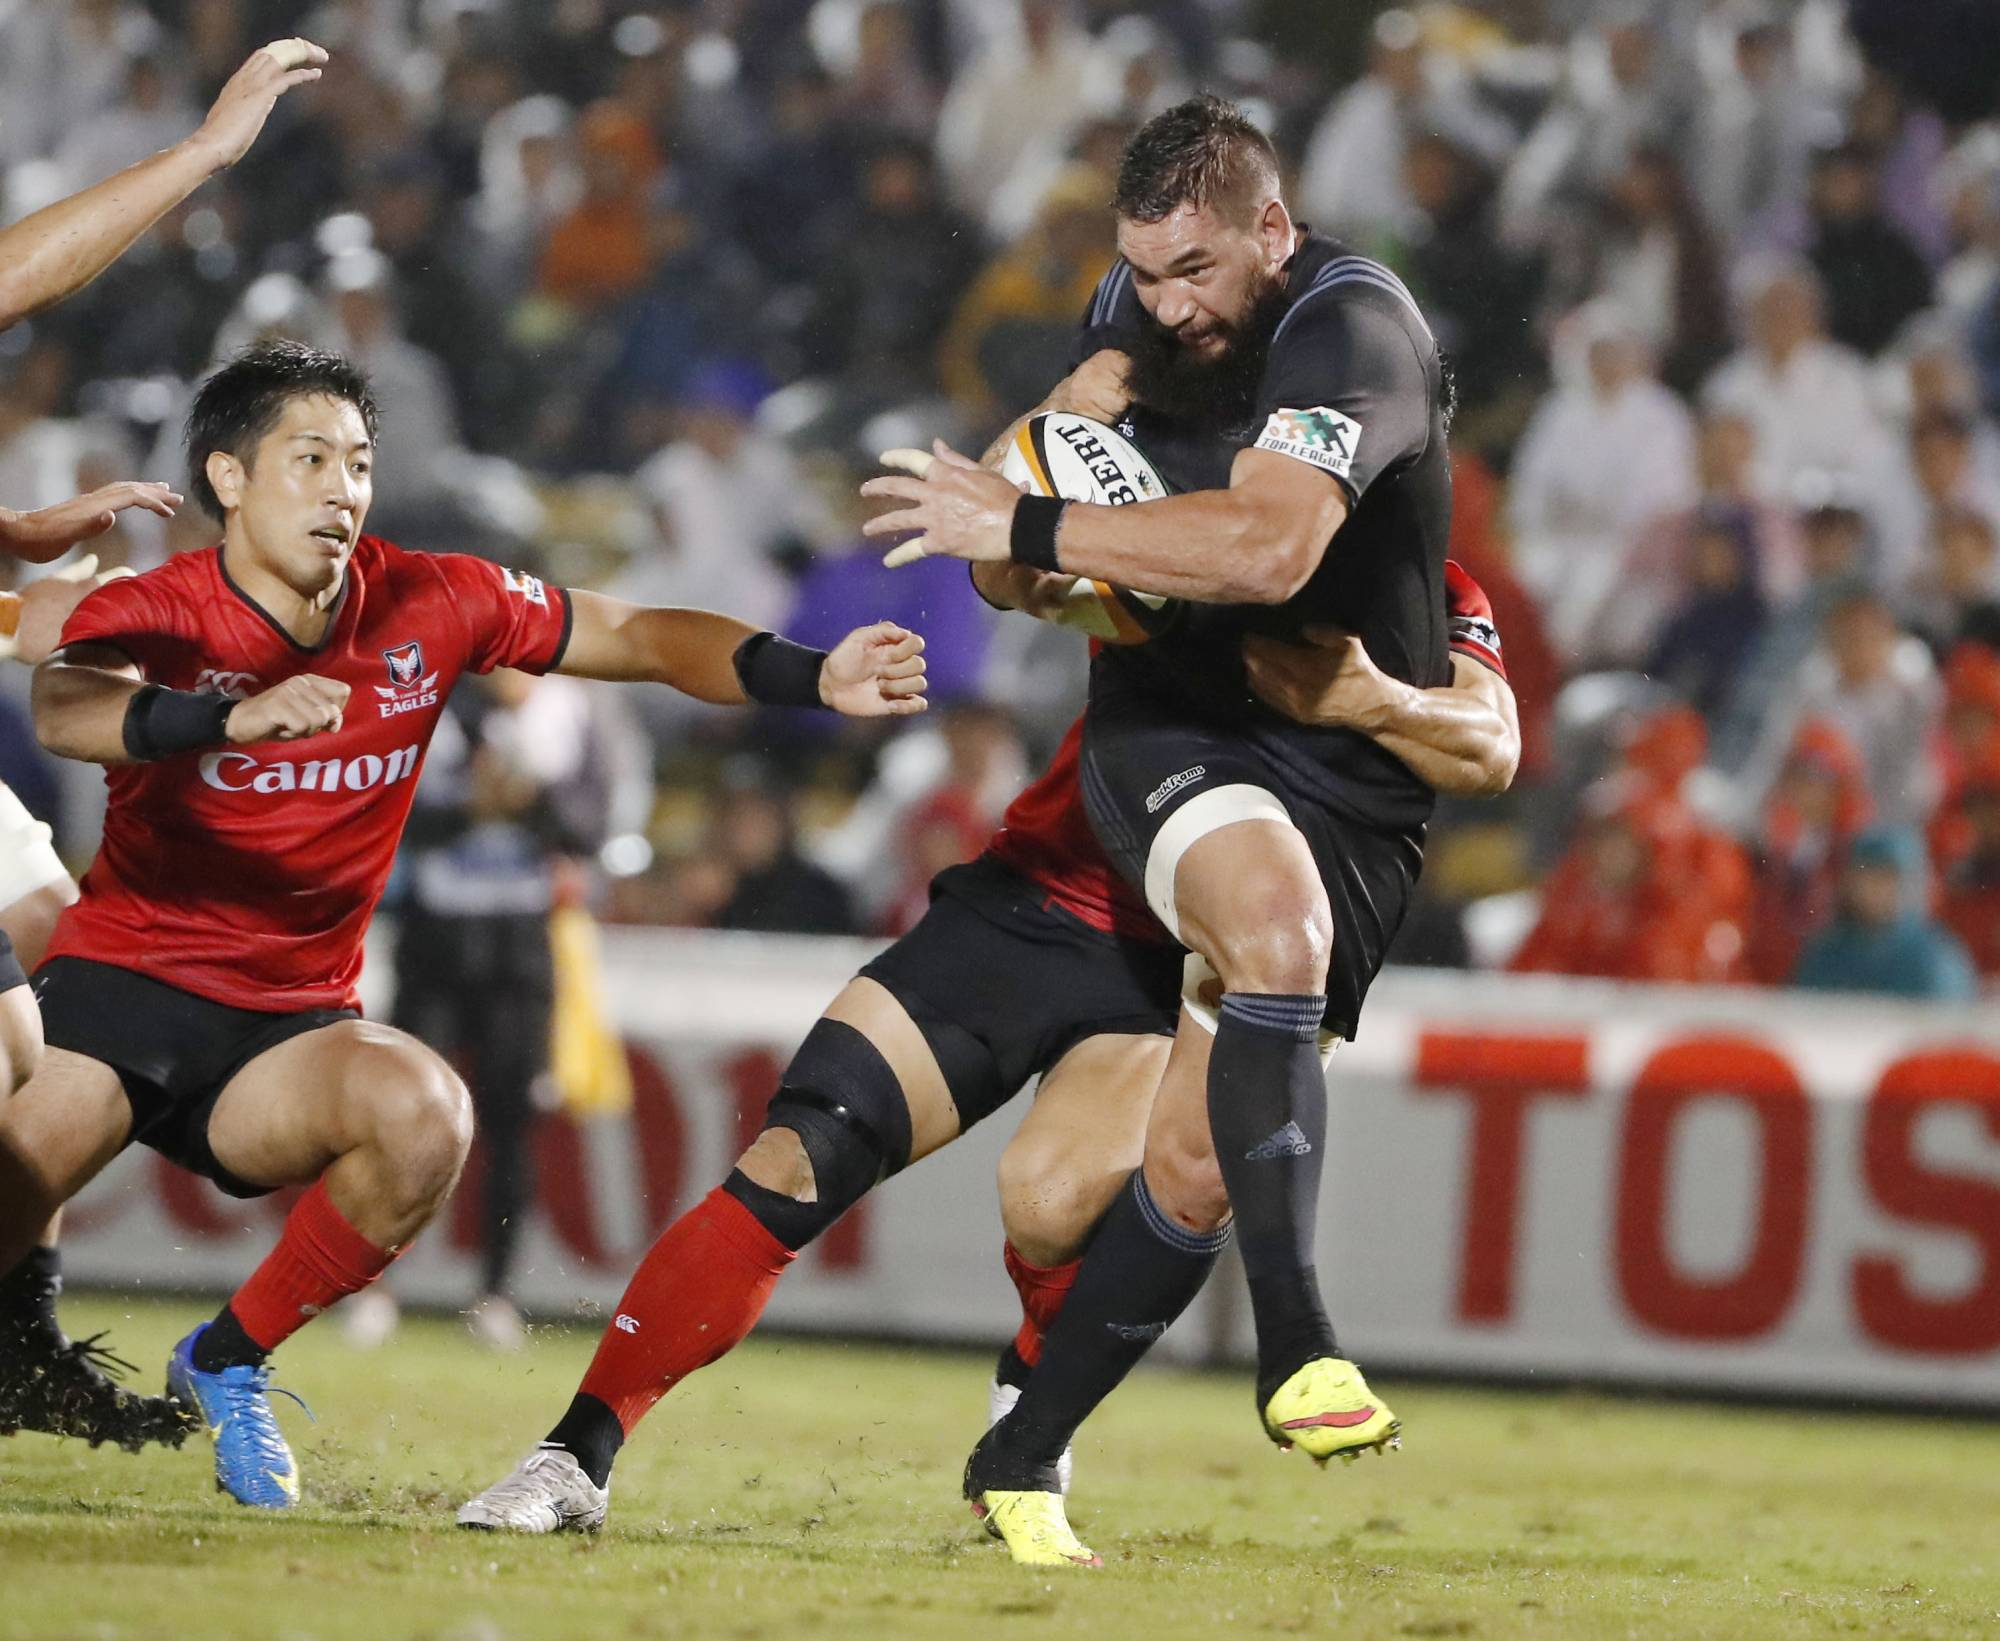 Ricoh Black Rams No. 8 Colin Bourke (right) plays against Canon Eagles during a Top League match on Sept. 21, 2018, at Tokyo's Chichibunomiya Rugby Stadium. | KYODO